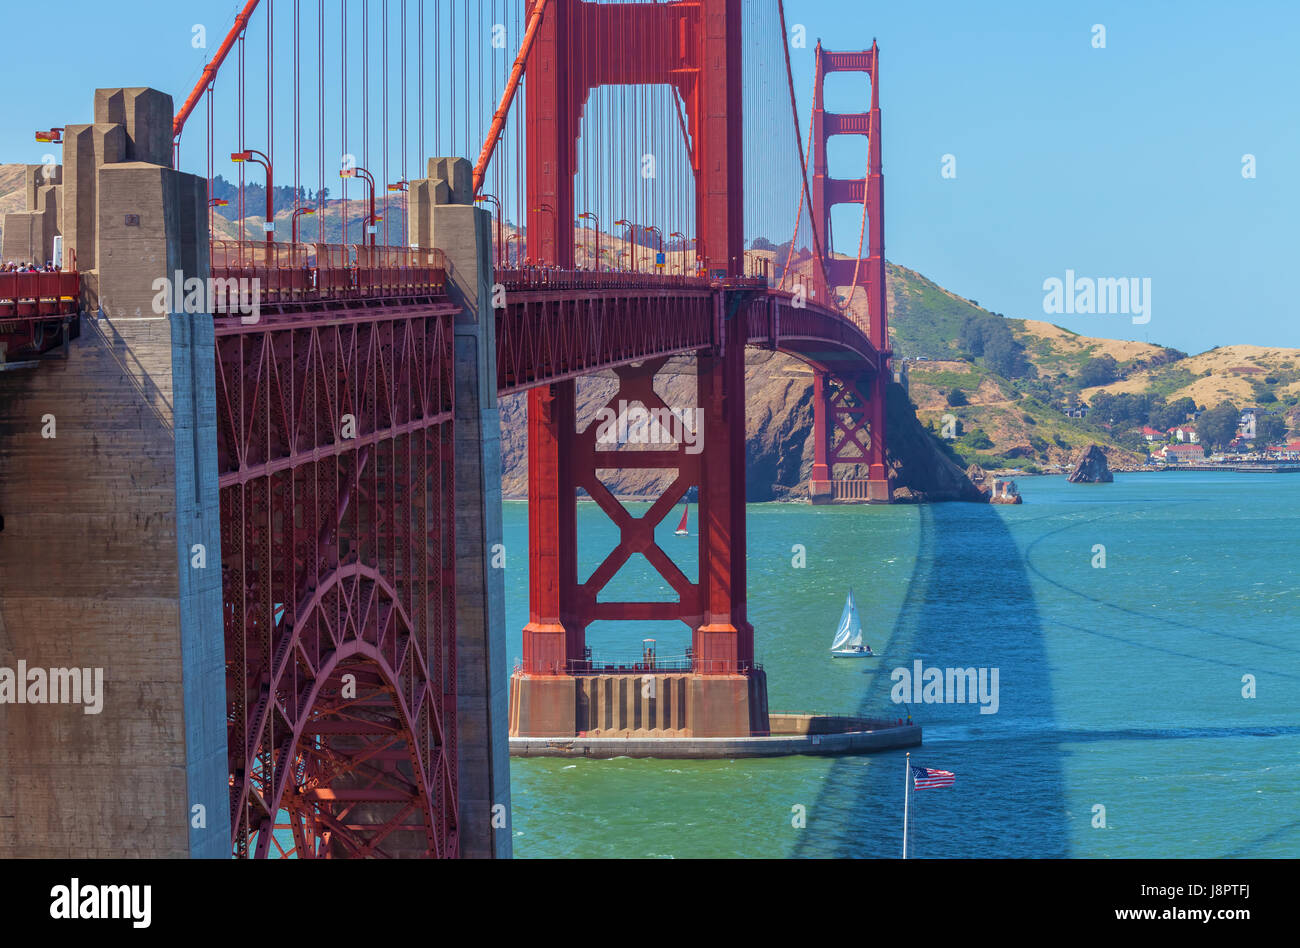 The iconic Golden Gate Bridge in San Francisco, USAsu - Stock Image